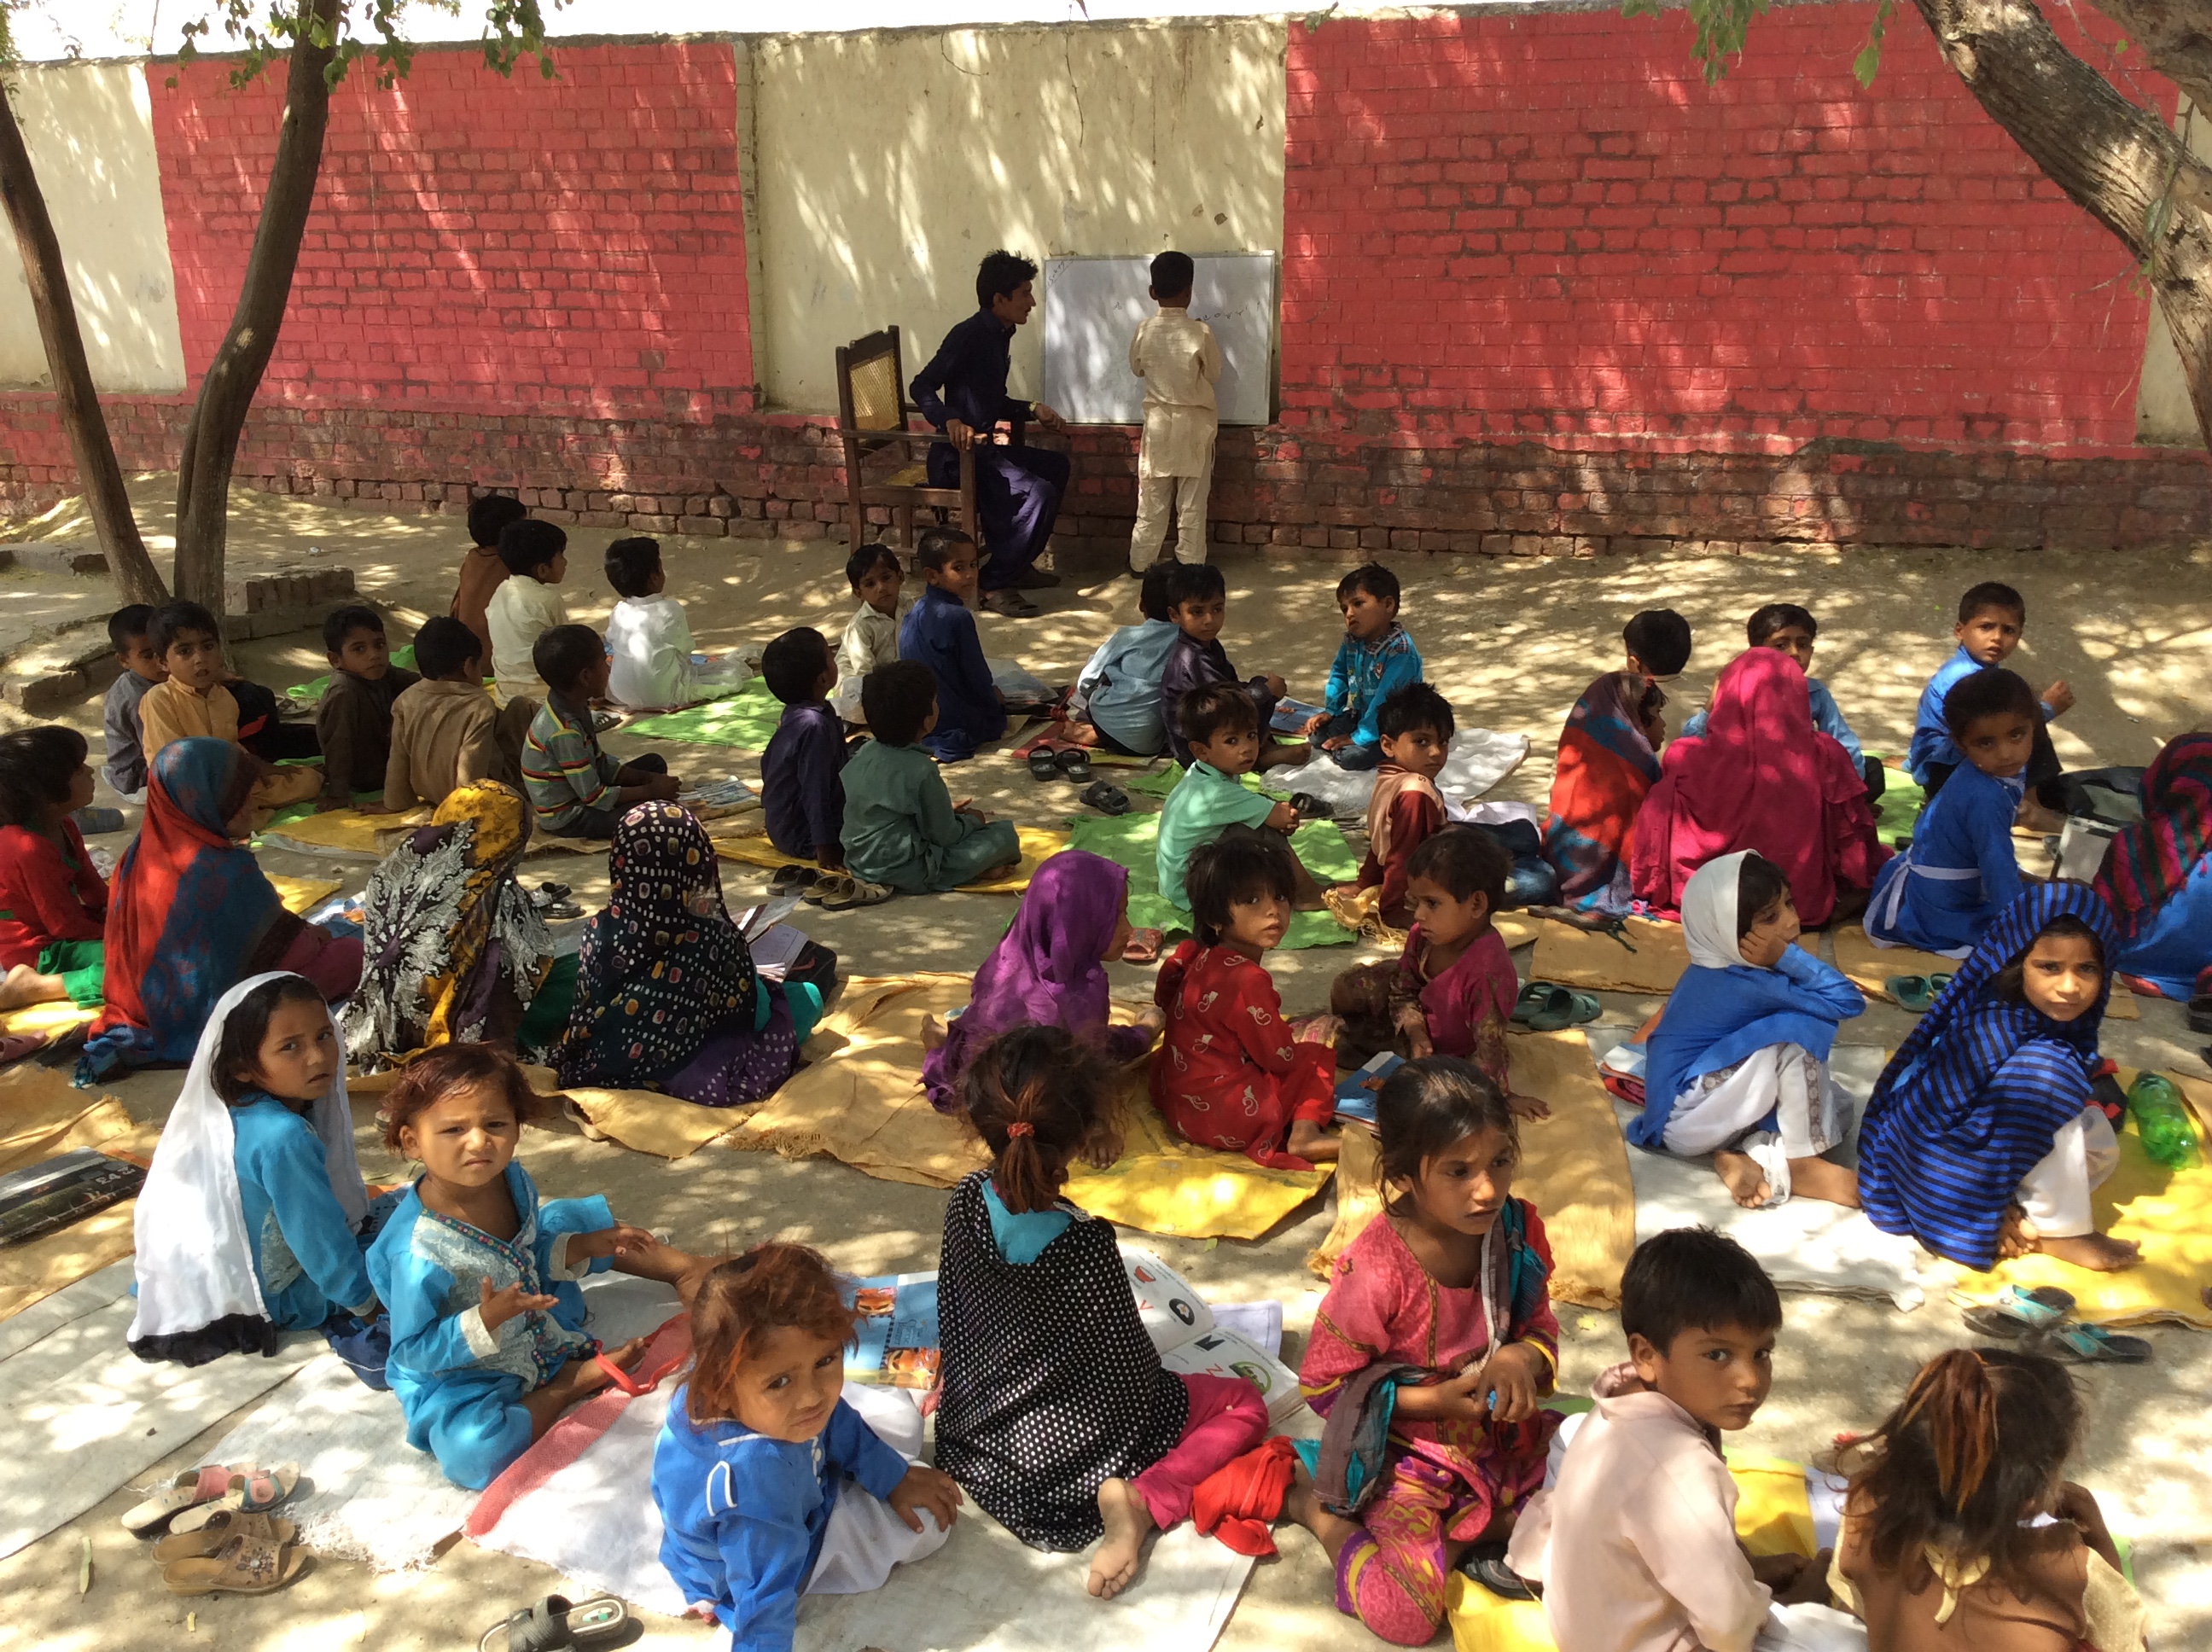 Toba Allayar Primary Facing the sun and heat outdoors